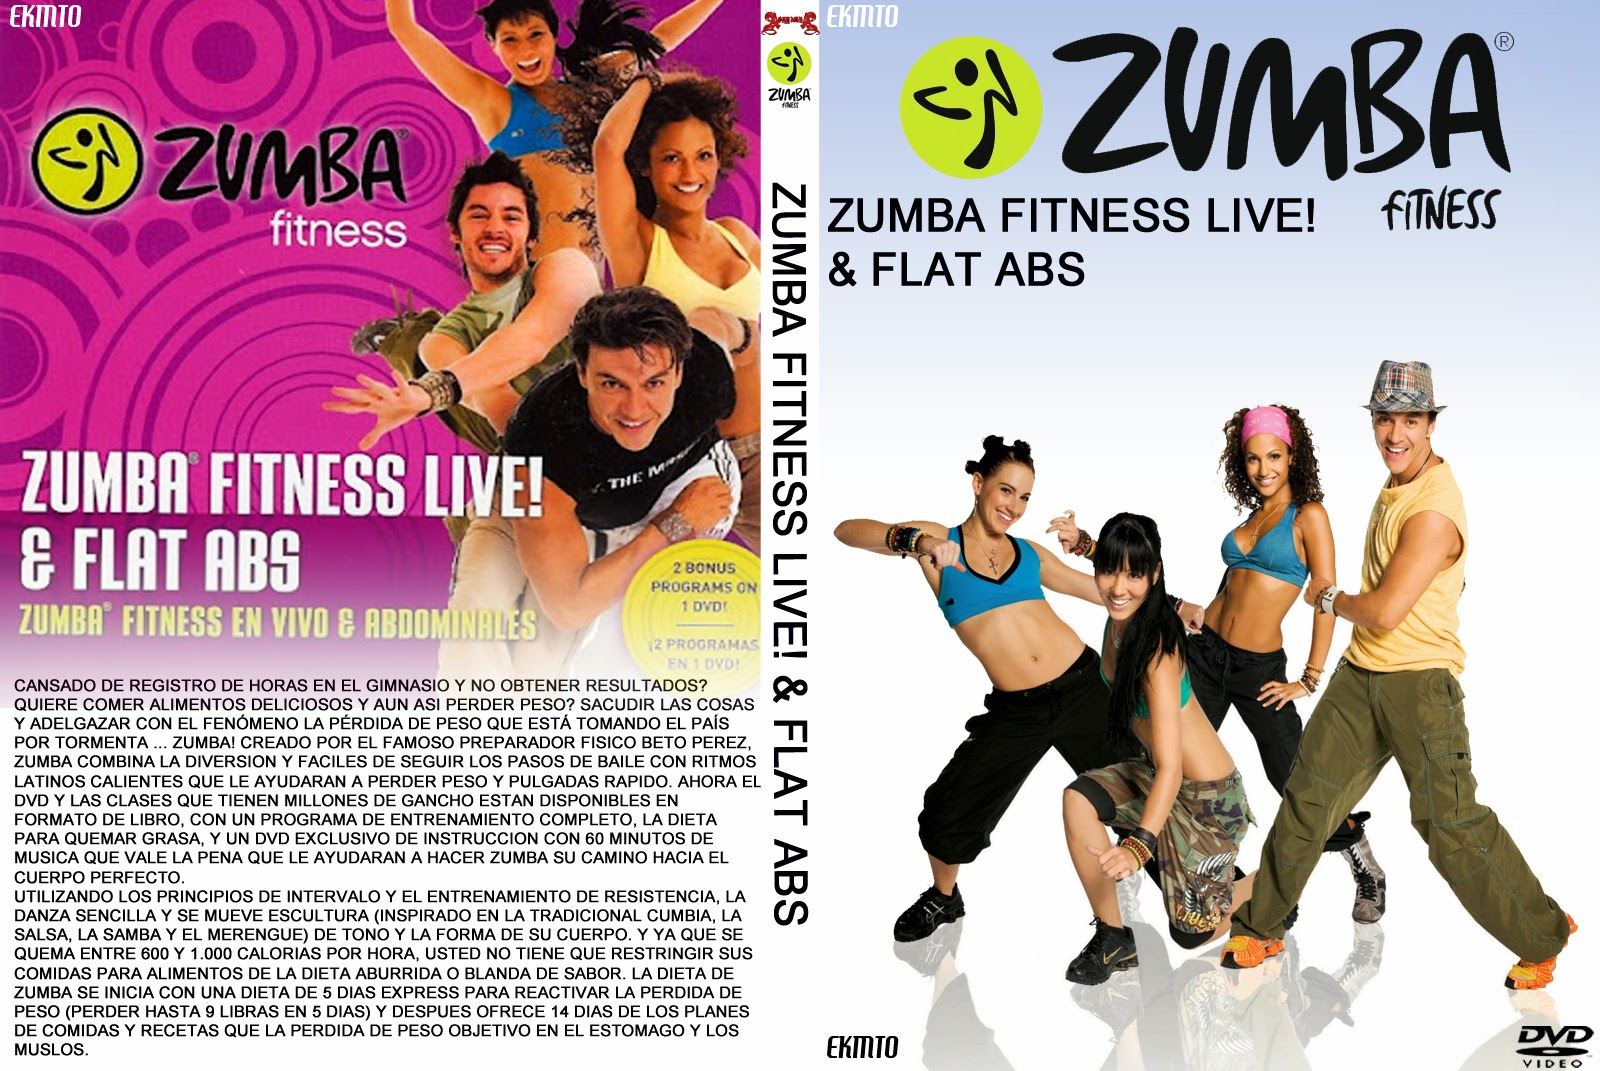 Zumba Dvd Covers Related Keywords - Zumba Dvd Covers Long Tail Keywords KeywordsKing